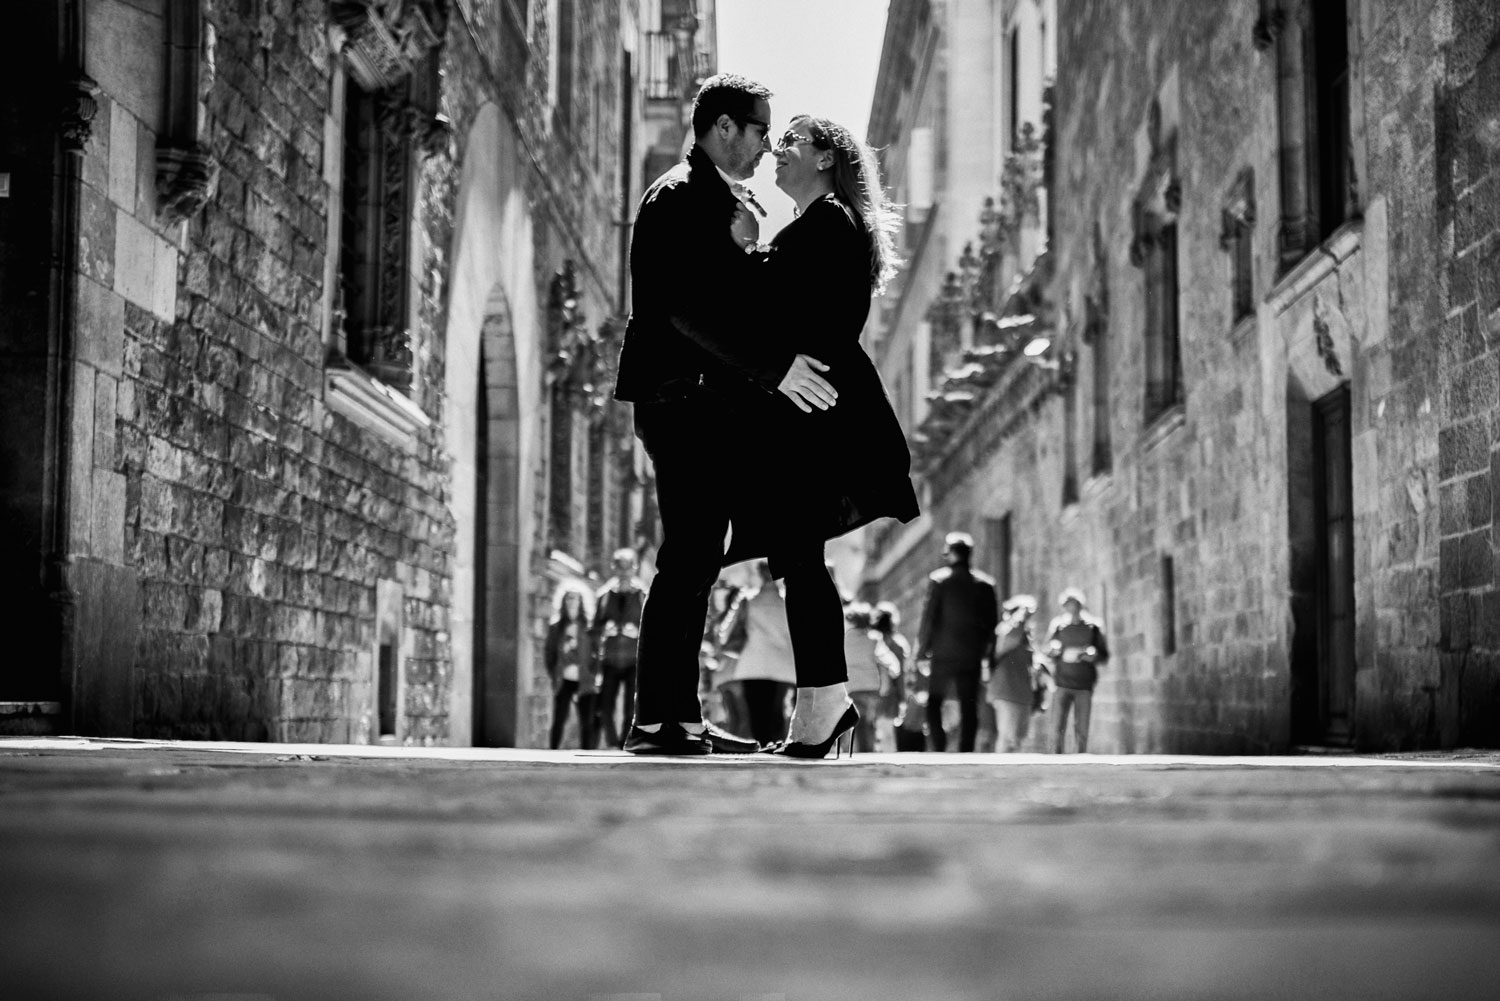 Michelle Durpetti and Collin Pierson engagement photos in Barcelona, Spain black and white kiss